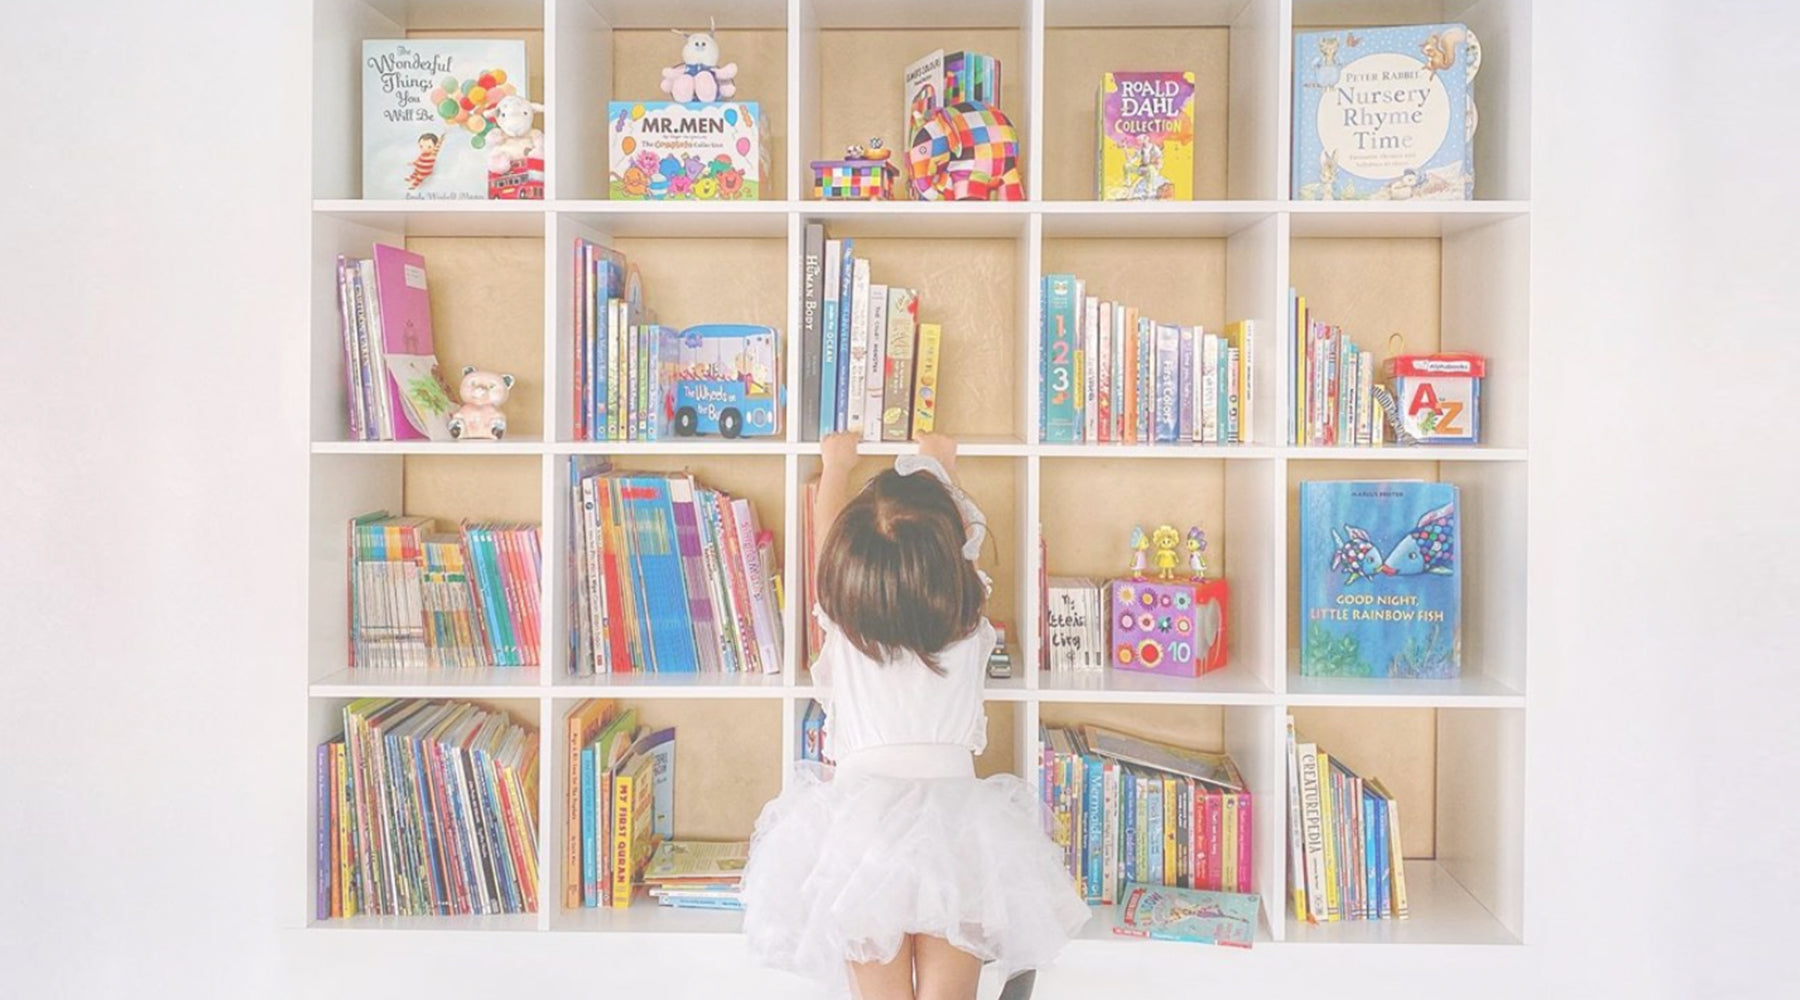 Little girl in white dress reaching for books in her bookshelf